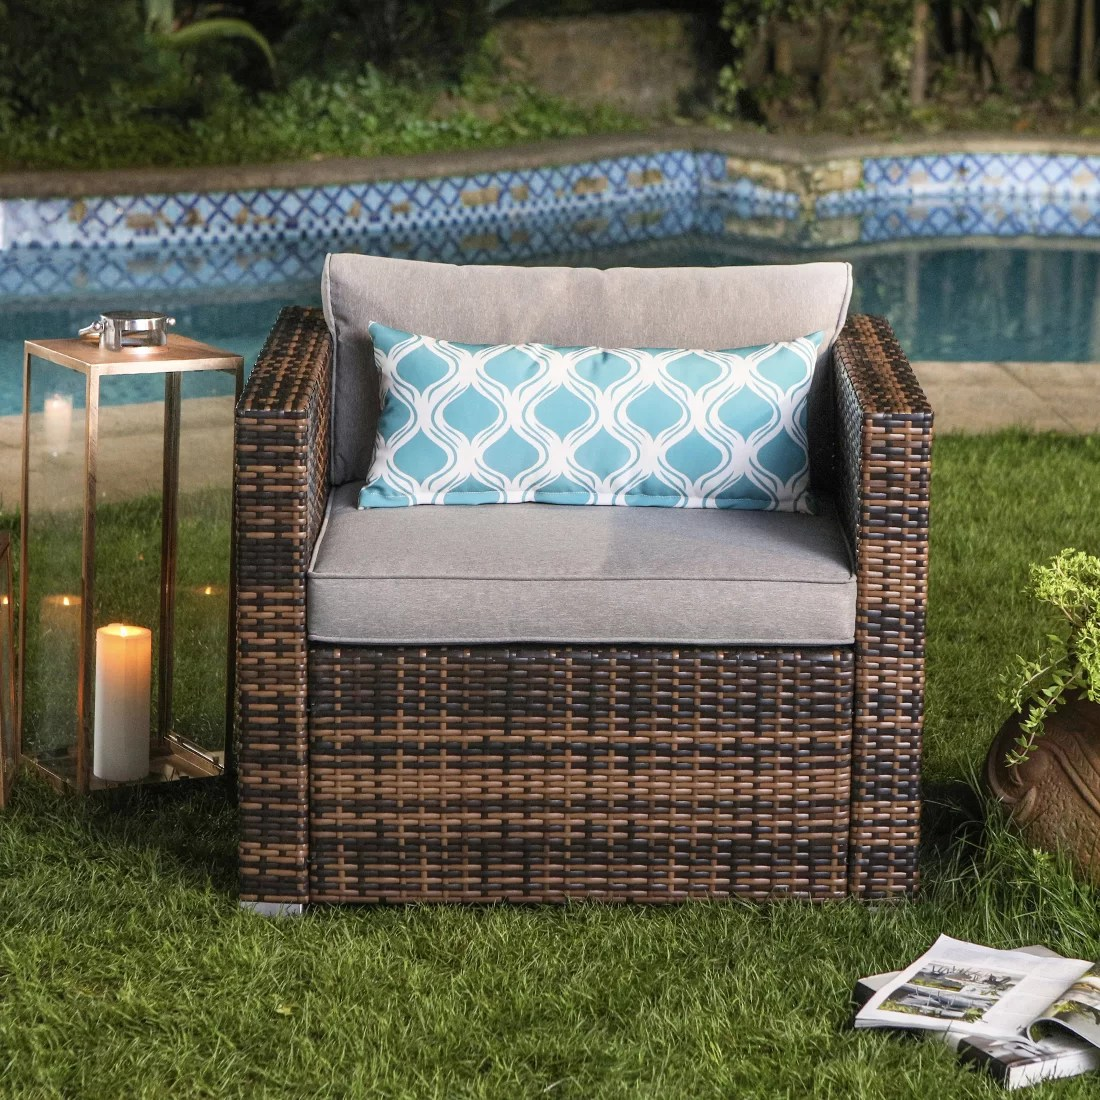 eitzen outdoor furniture all weather mottlewood brown wicker single chair w warm gray thick cushions teal pattern pillow